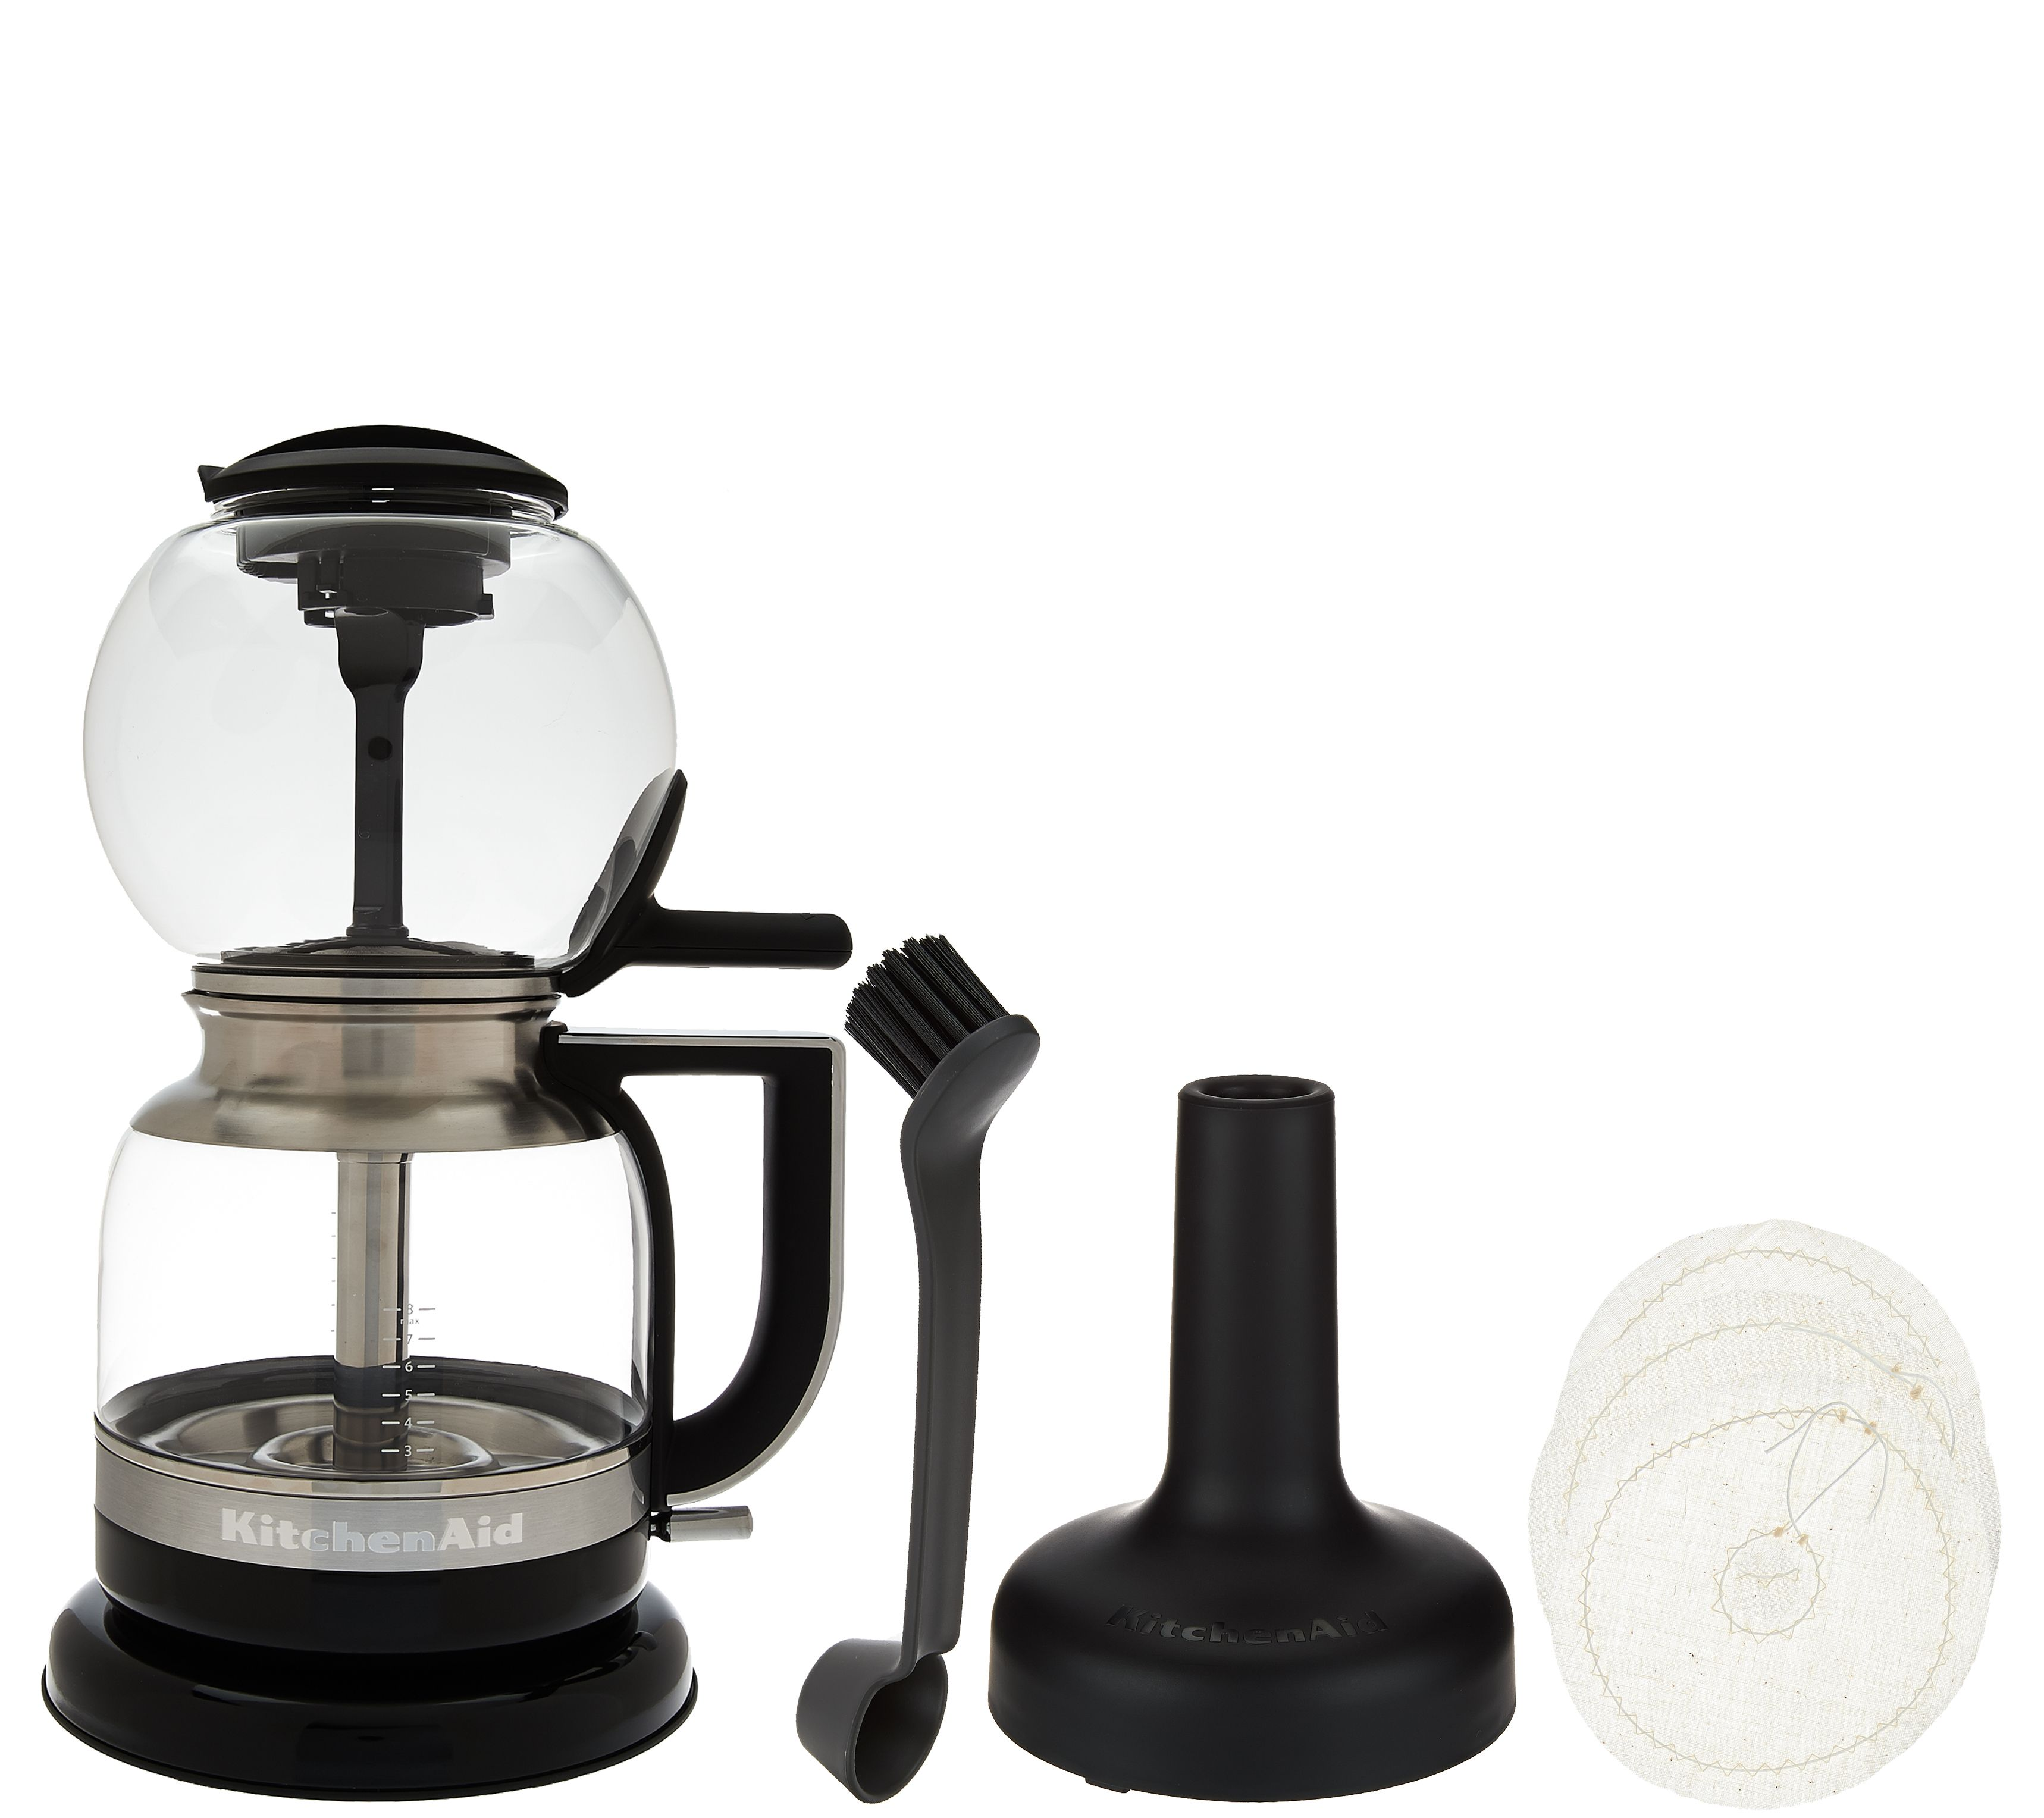 Kitchenaid Siphon Coffee Brewer With Accessories Page 1 Syphon Maker Electric